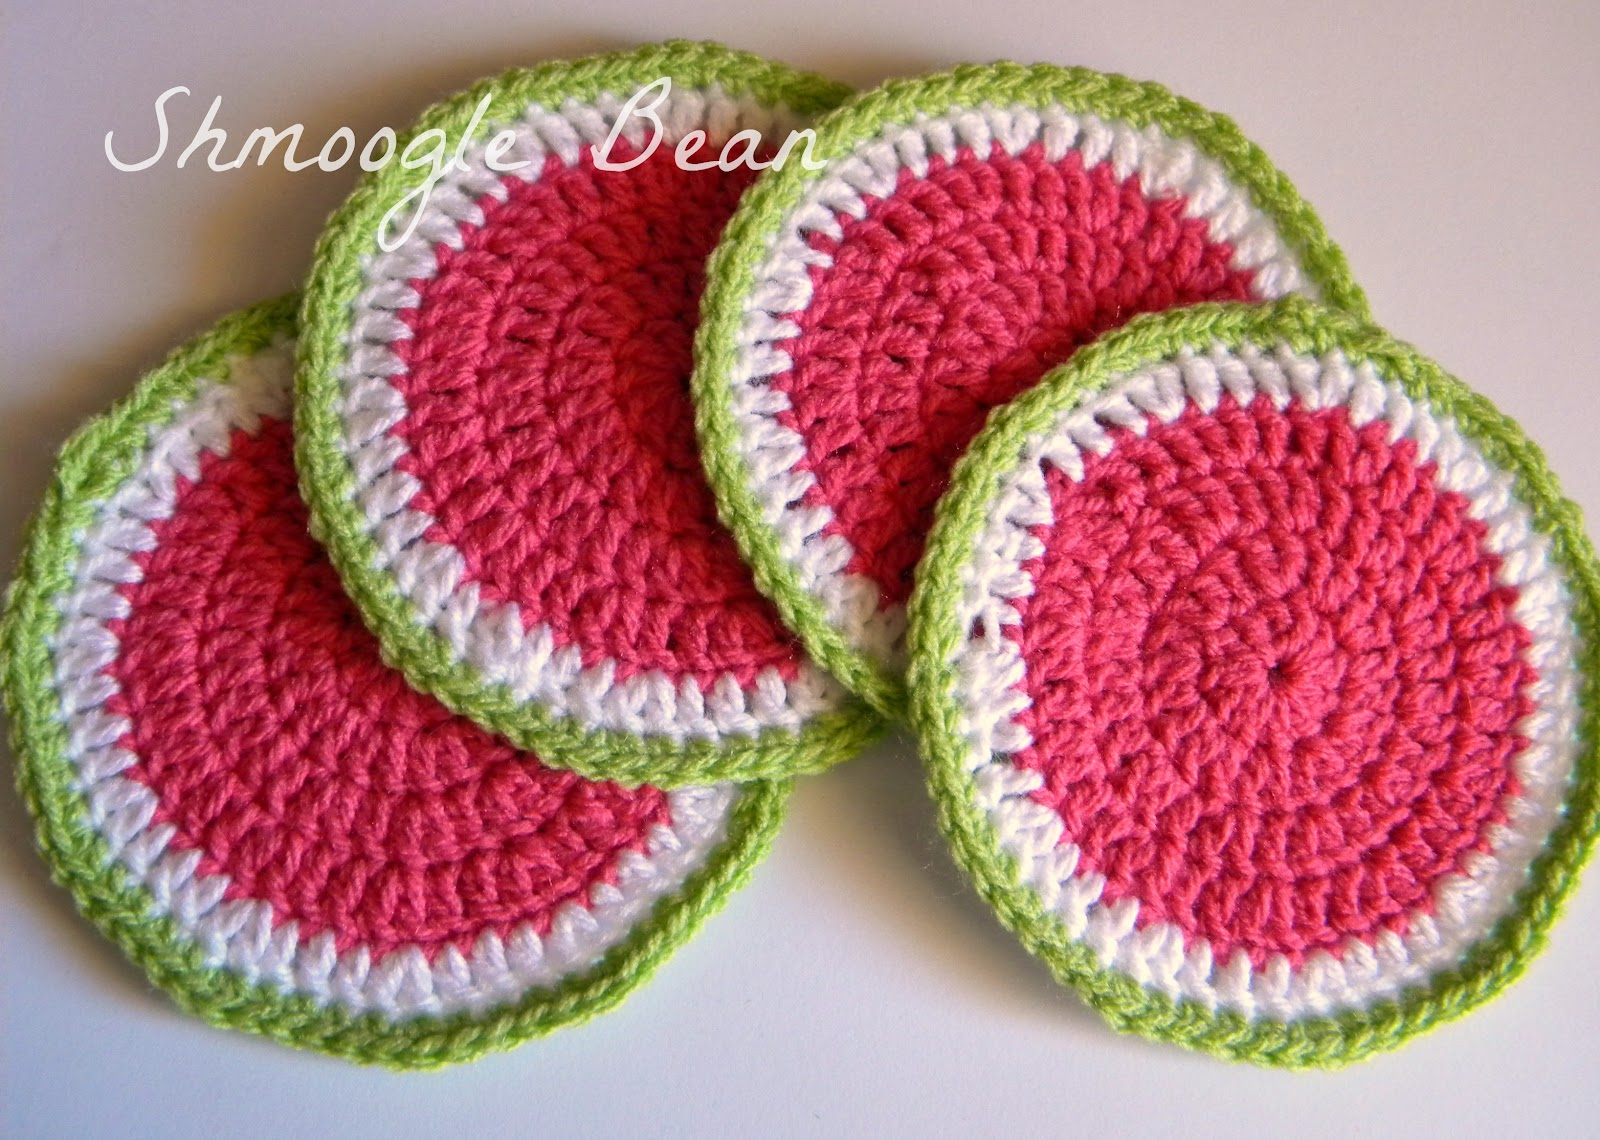 Crocheting Coasters : The Quirky Crafting Shmoogle Bean: Watermelon Crochet Coasters